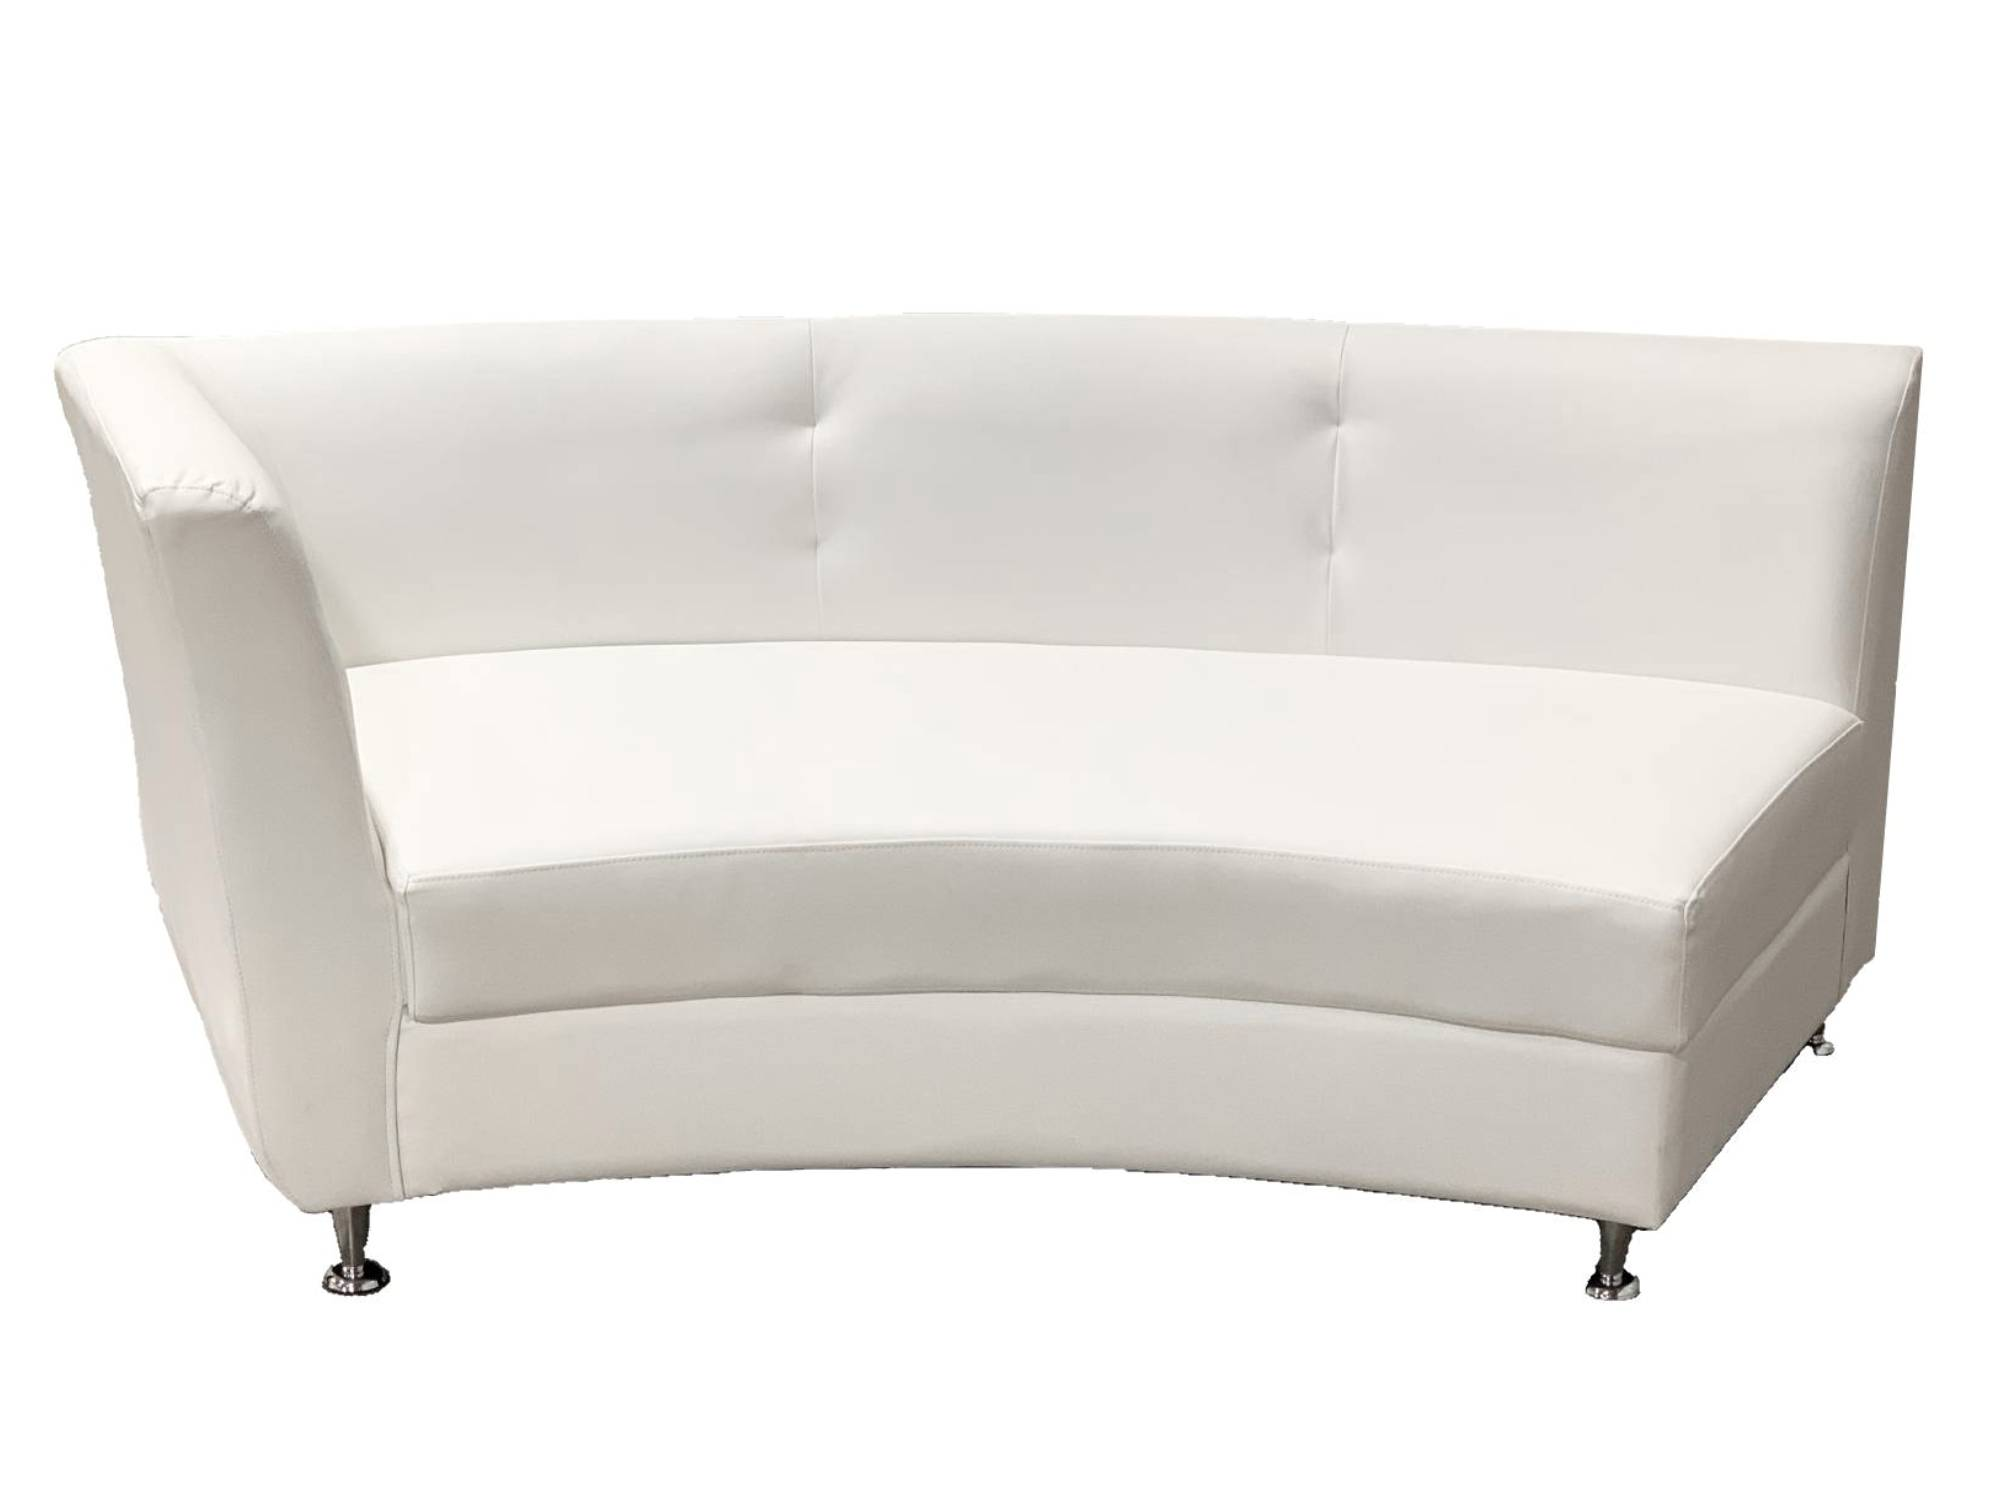 LUXURY RIGHT ARM SOFA SECTION - WHITE